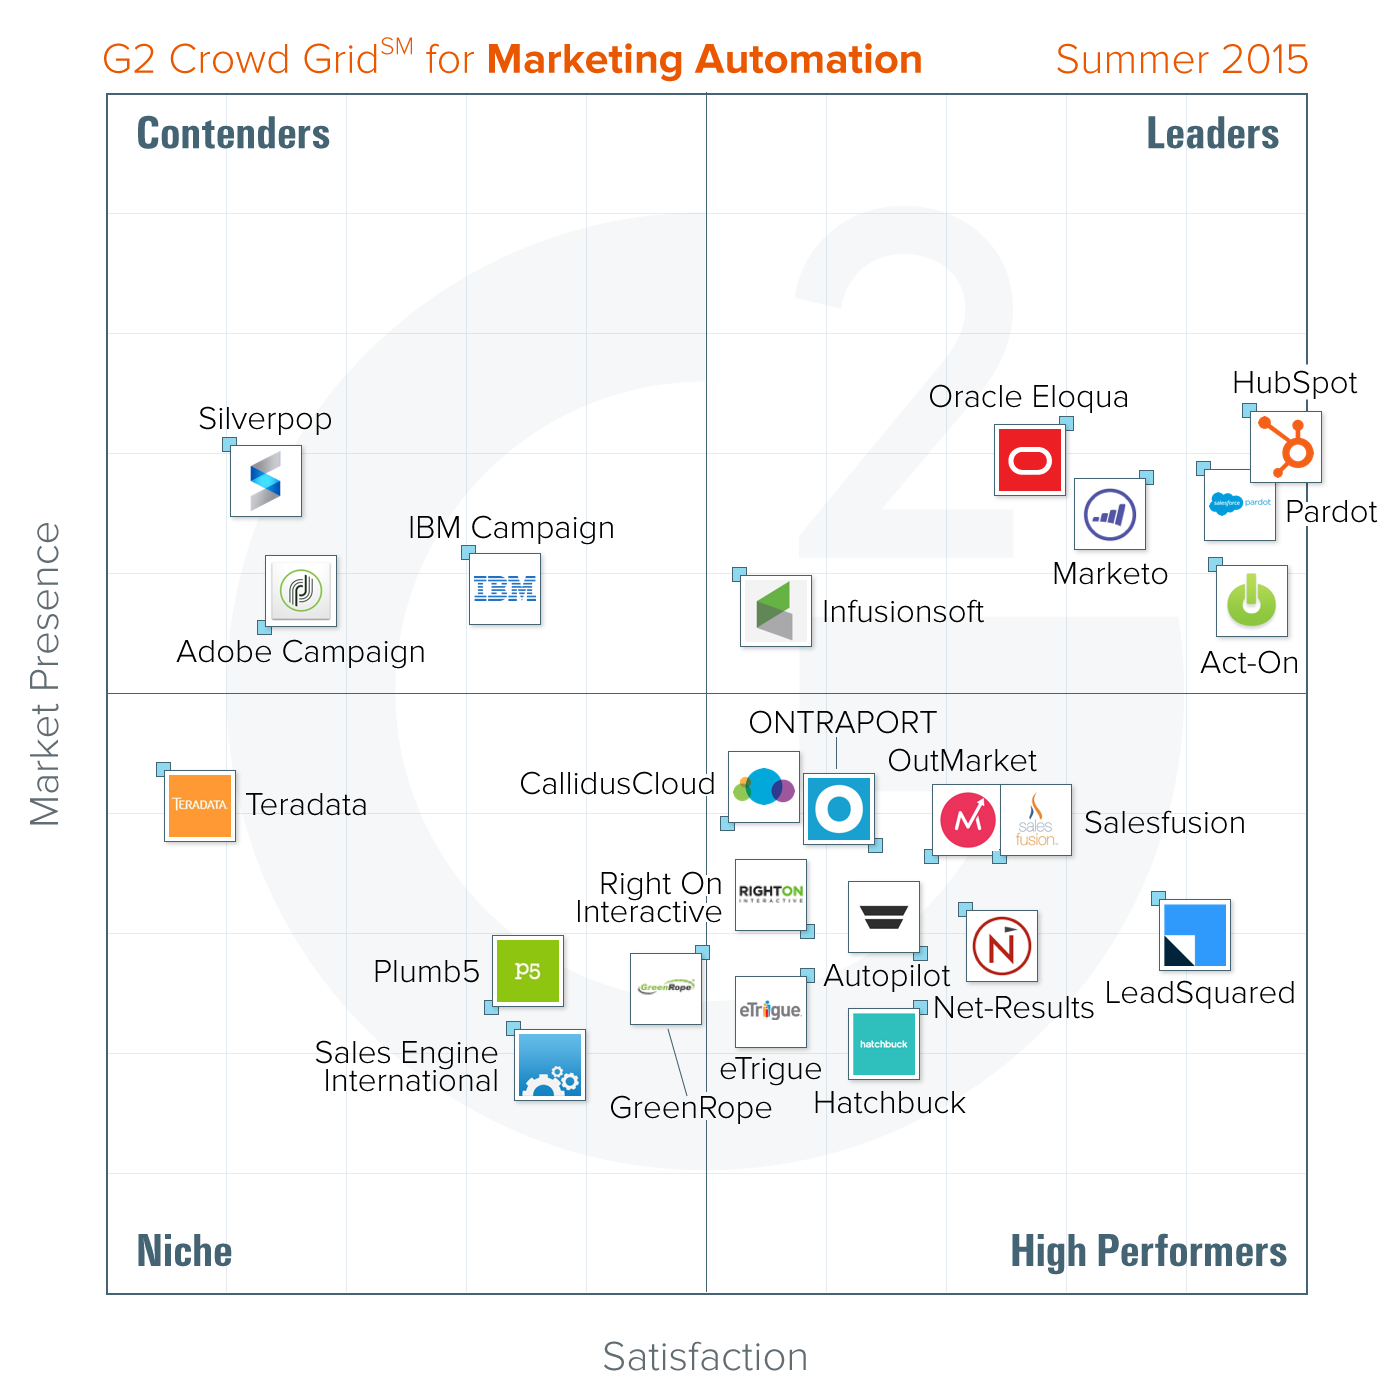 Marketing-Automation-Grid-Summer-2015-2.png